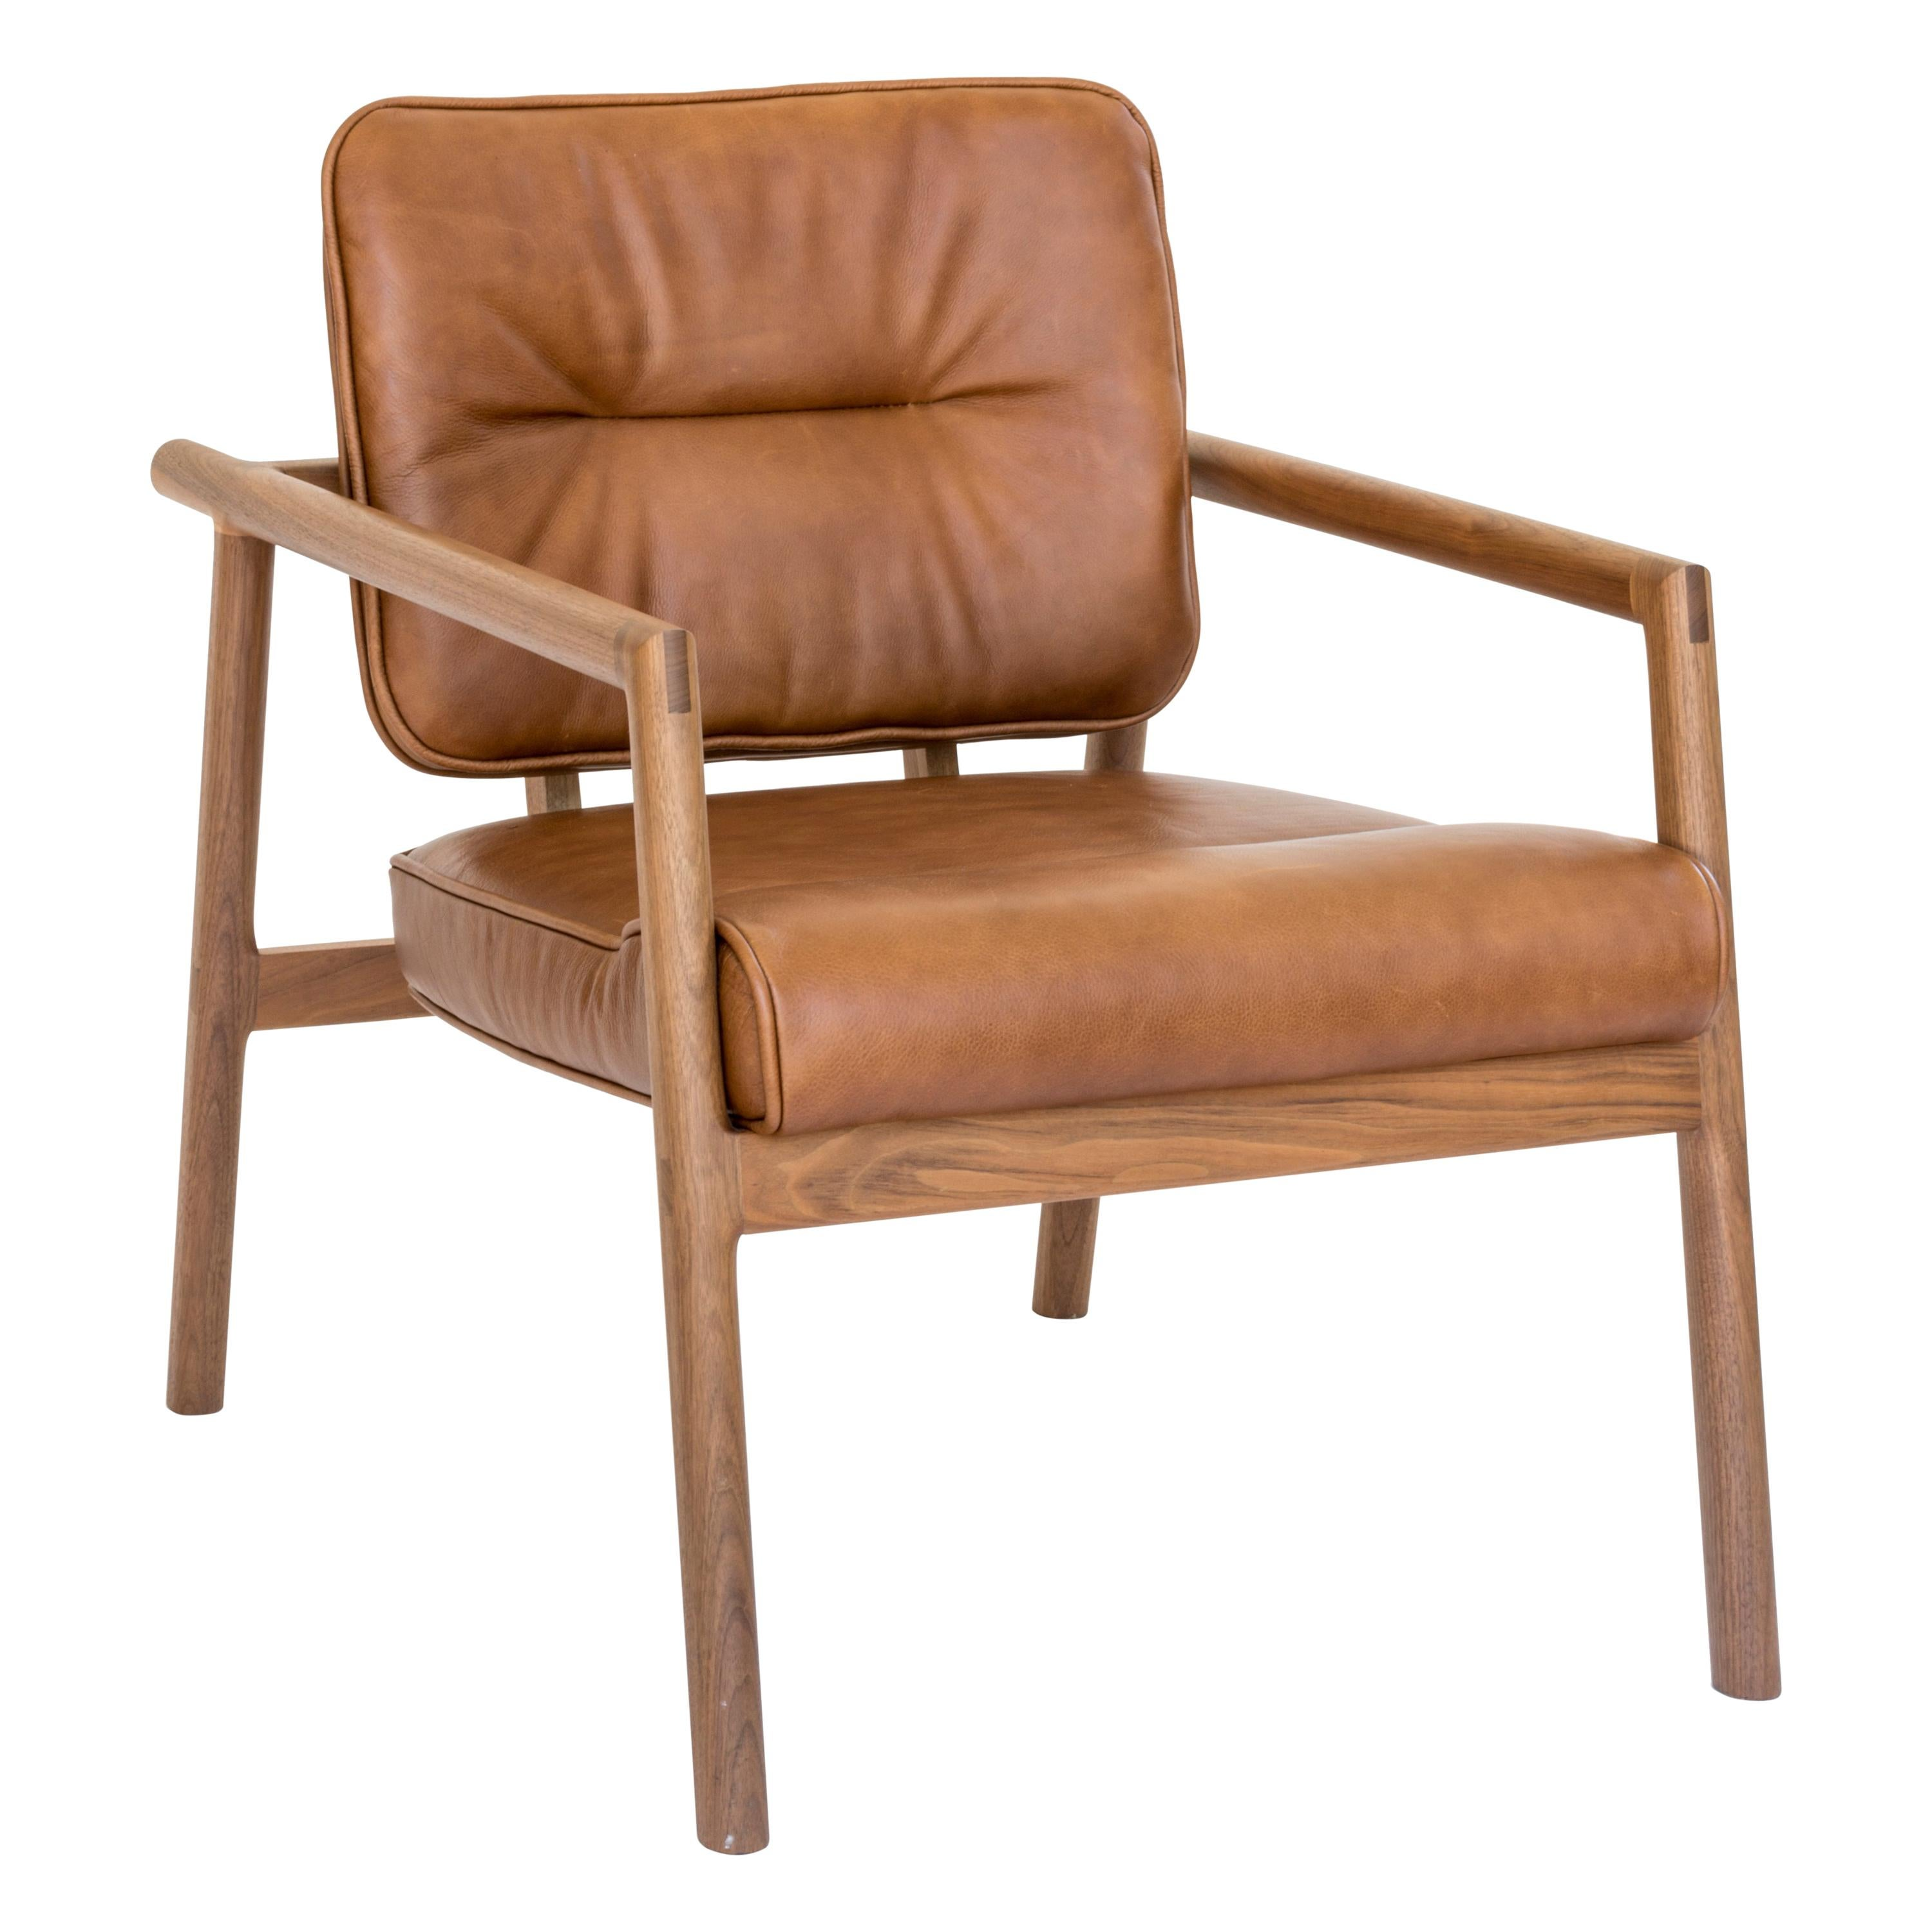 Chris Earl Walnut, Camel Leather Moresby Armchair